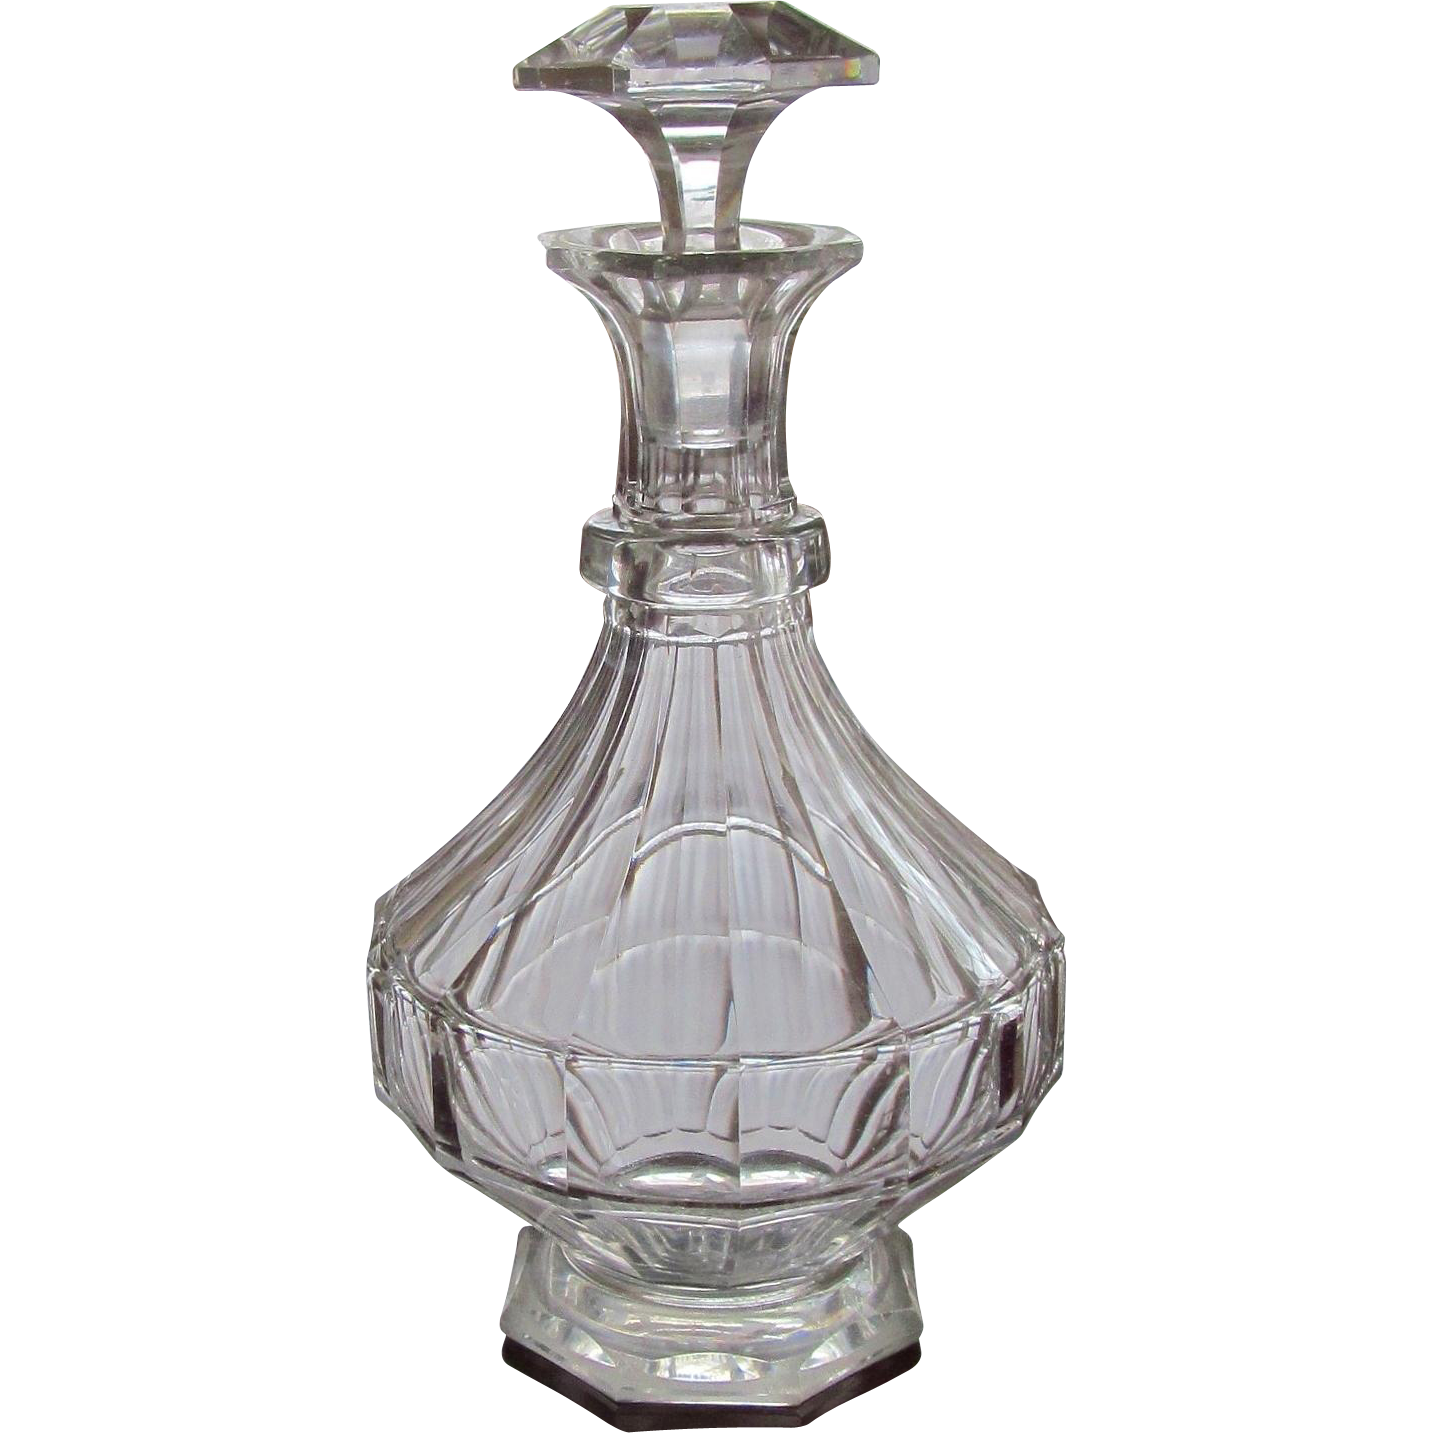 bohemian decanter carafe cut glass crystal from glassloversgallery on ruby lane. Black Bedroom Furniture Sets. Home Design Ideas